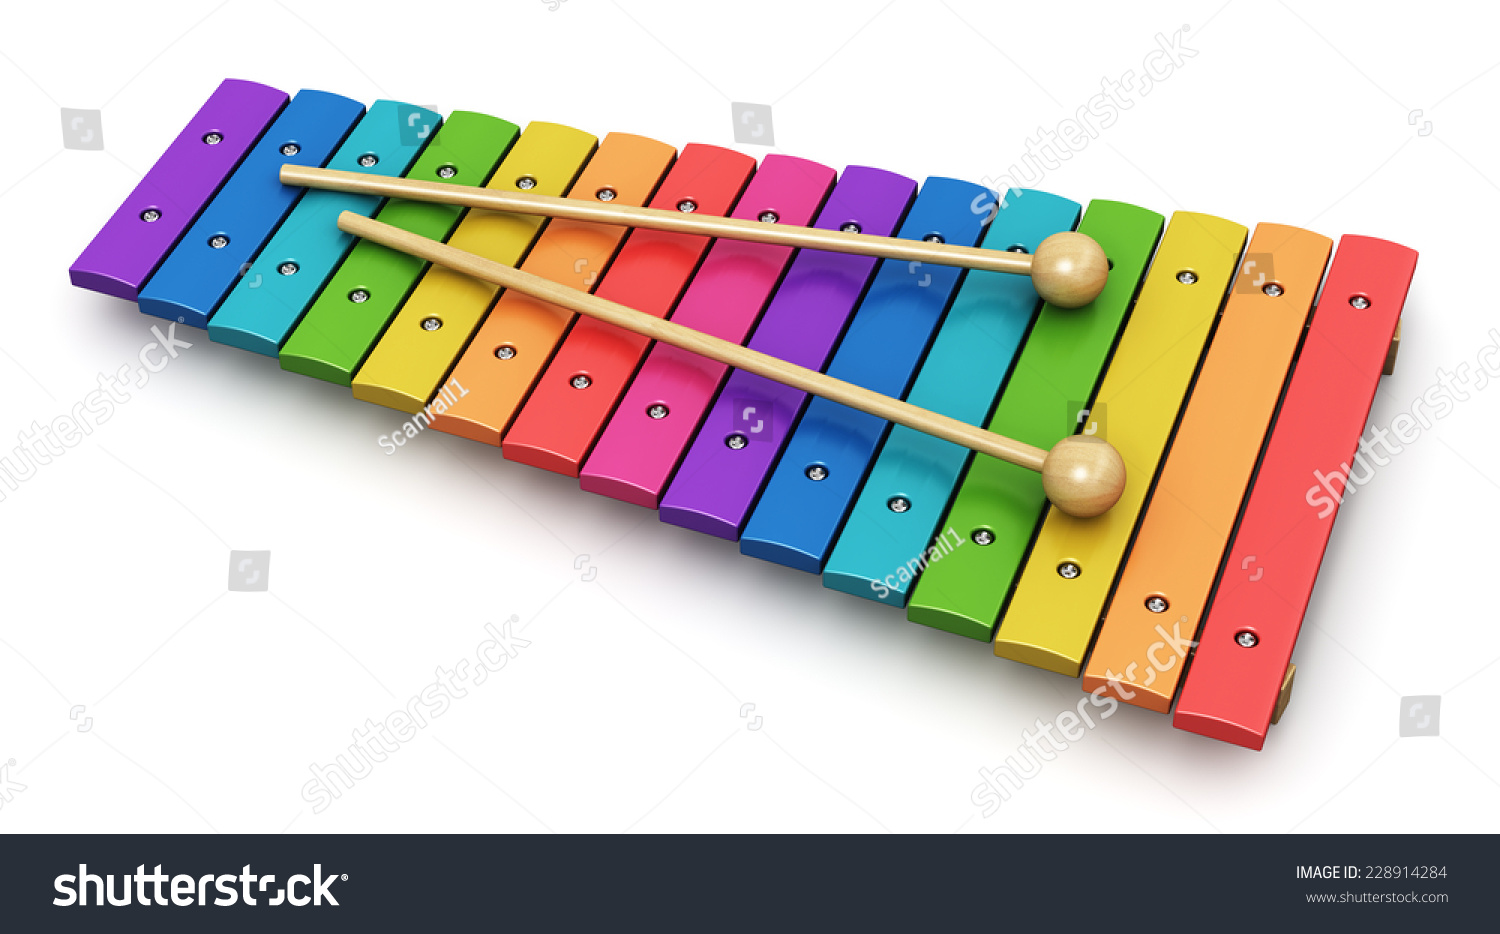 Wooden Rainbow Xylophone Sticks ~ Creative abstract percussion musical instrument and music